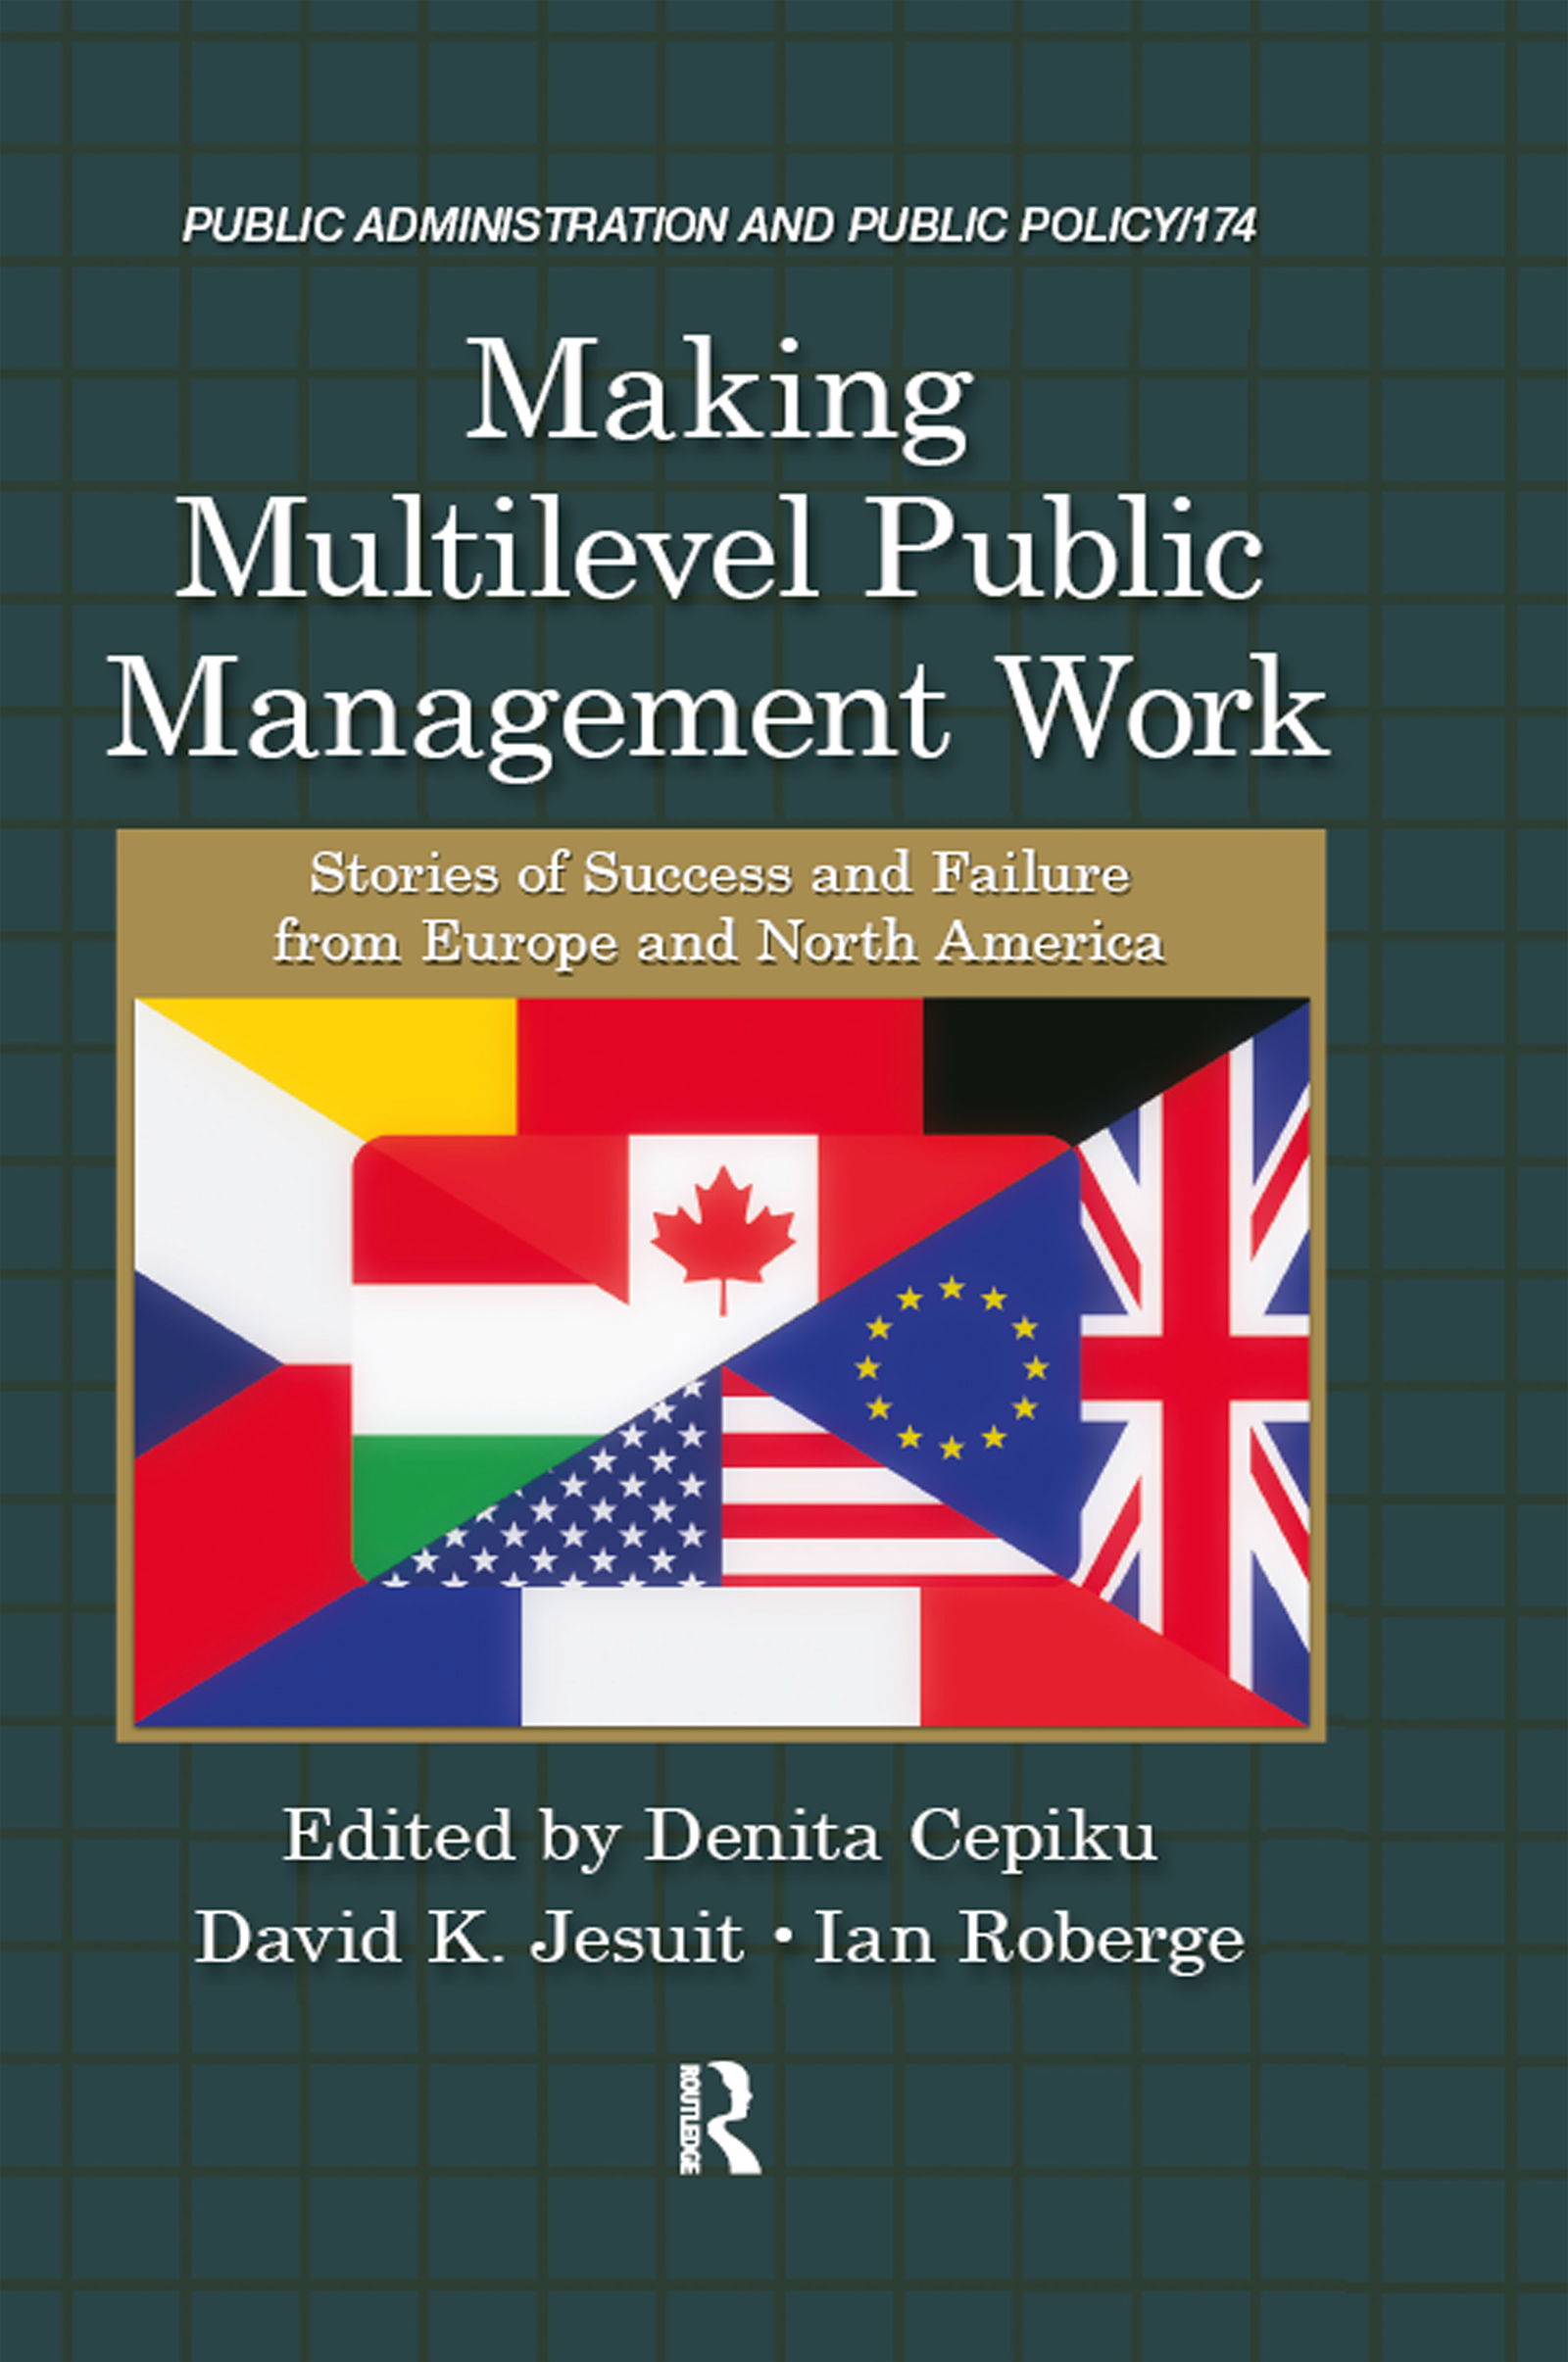 Making Multilevel Public Management Work: Stories of Success and Failure from Europe and North America book cover